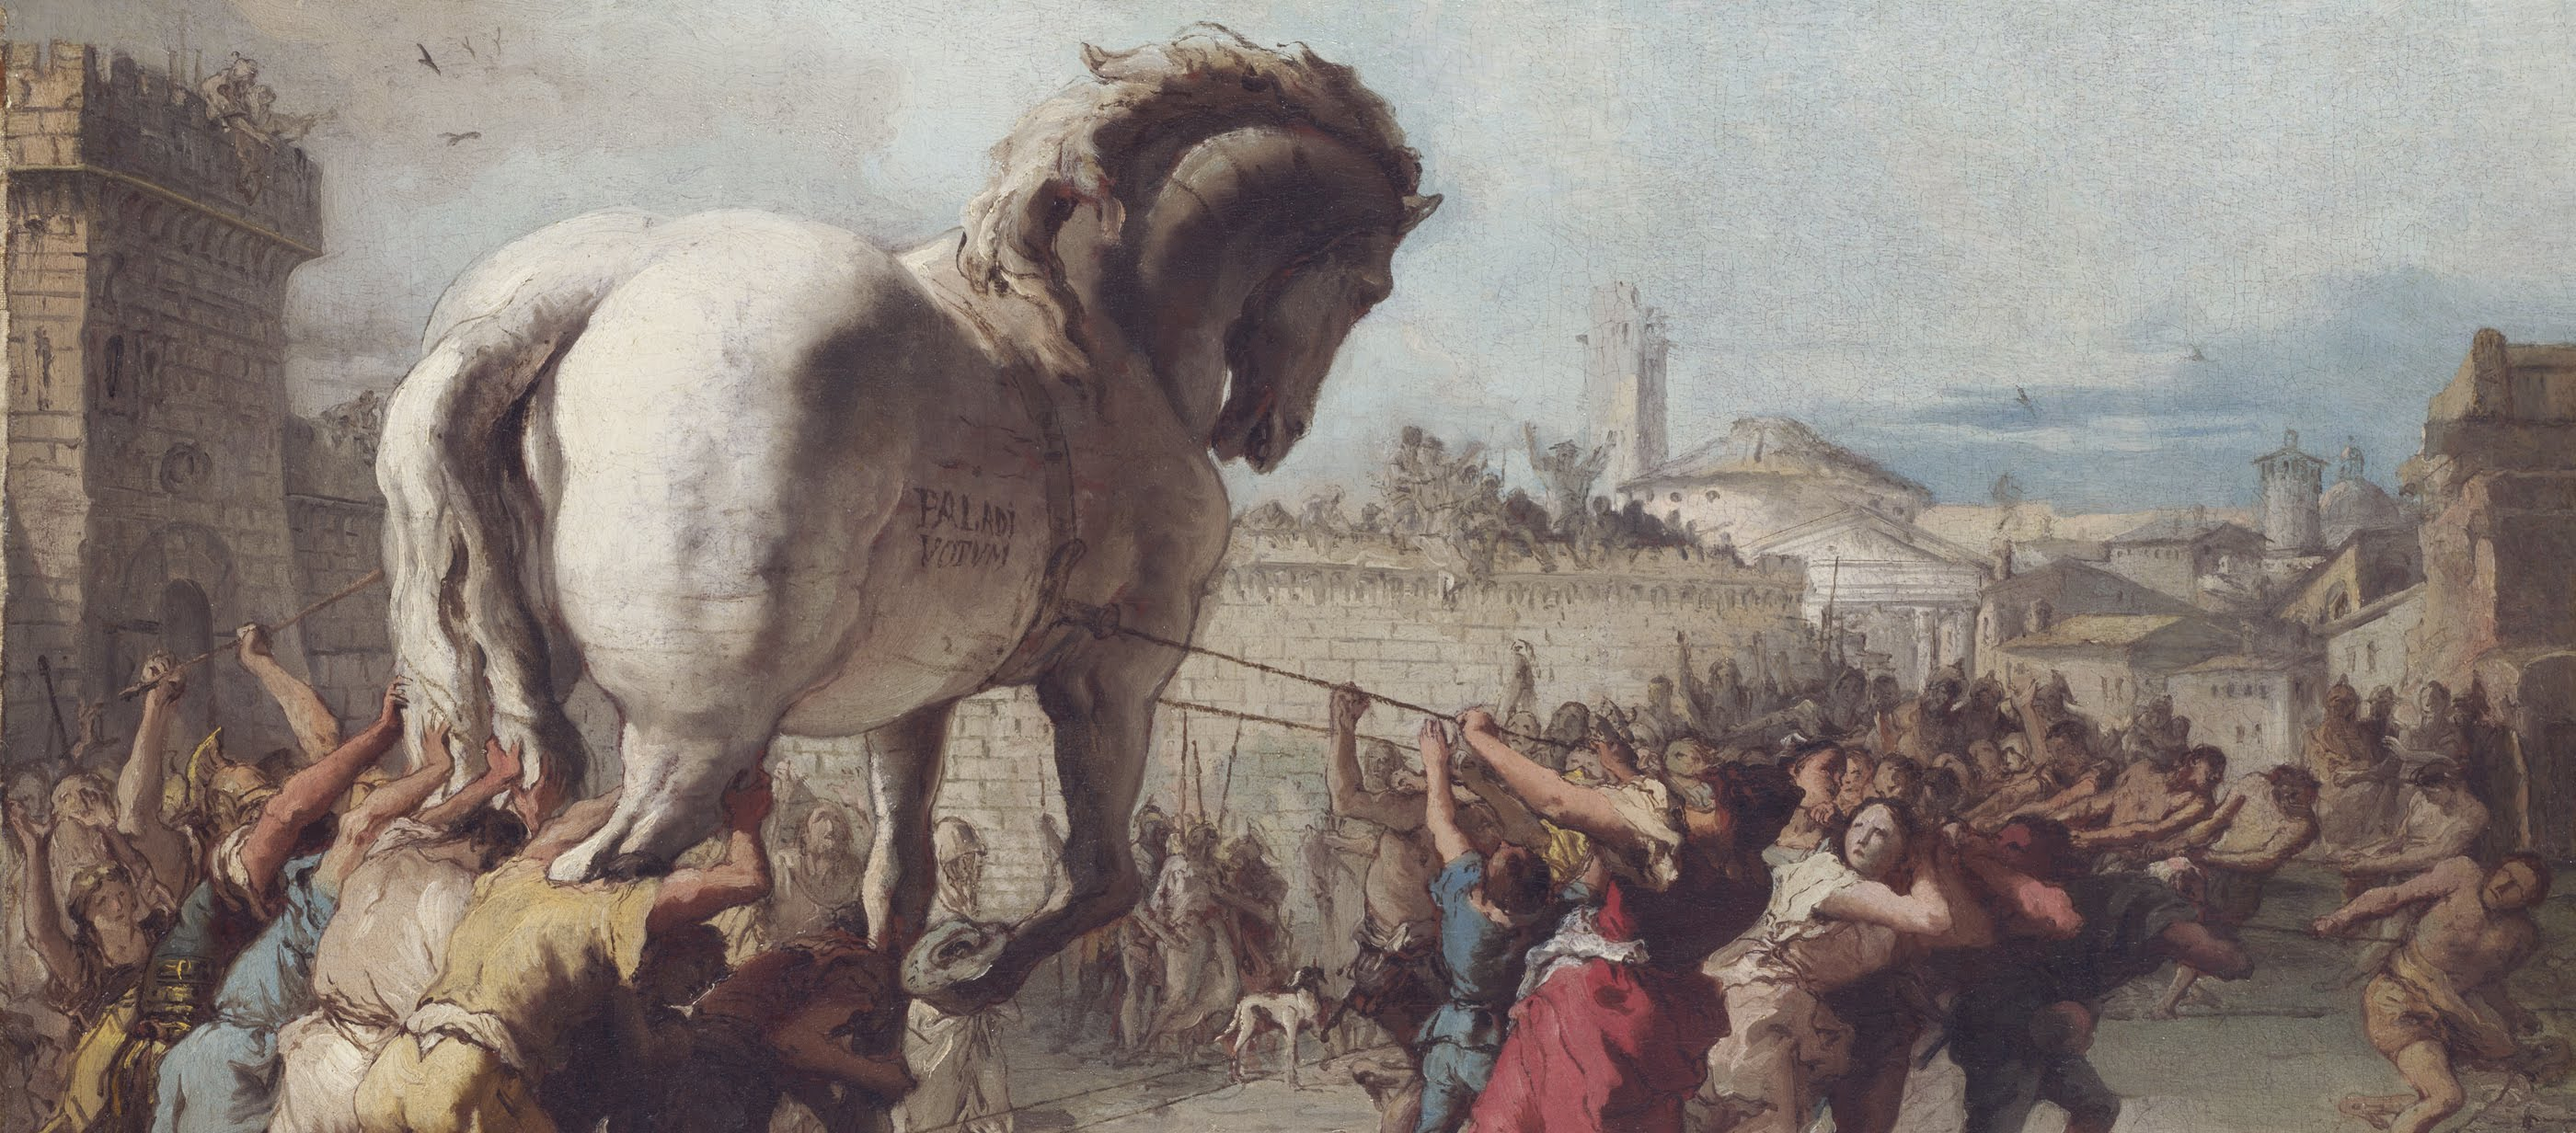 A painting of the Trojan horse created by the Greeks to take over the city of Troy.